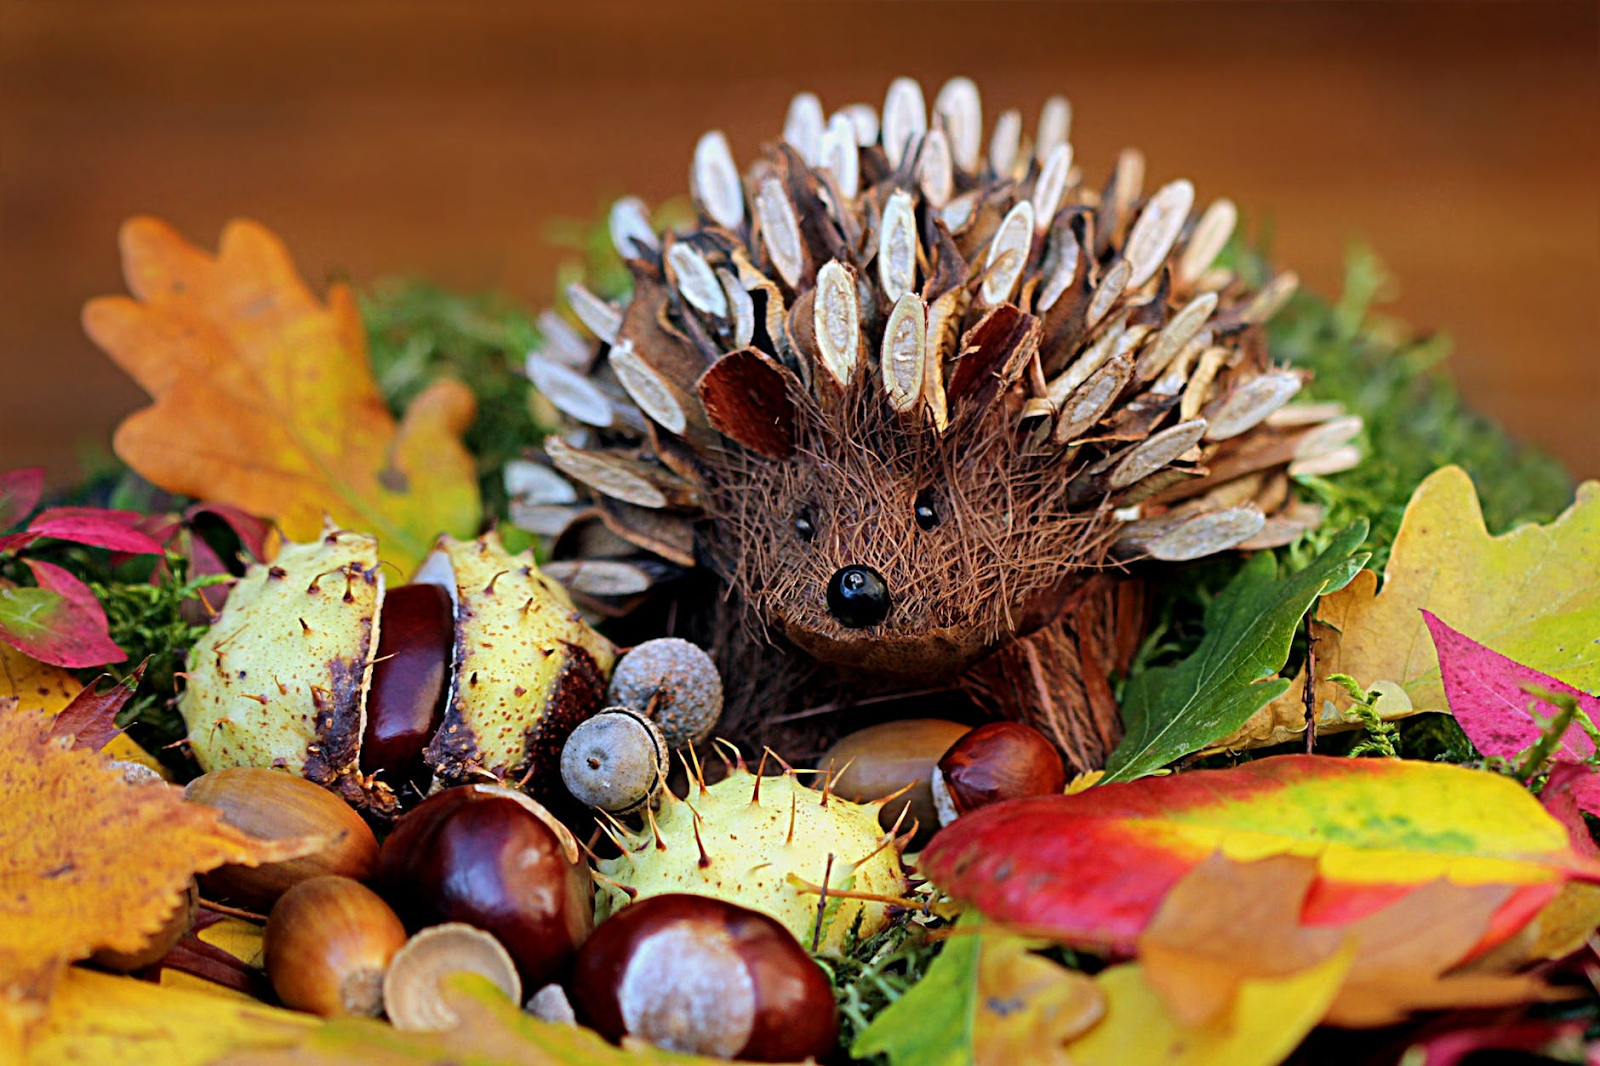 decorative hedgehog on fall leaves